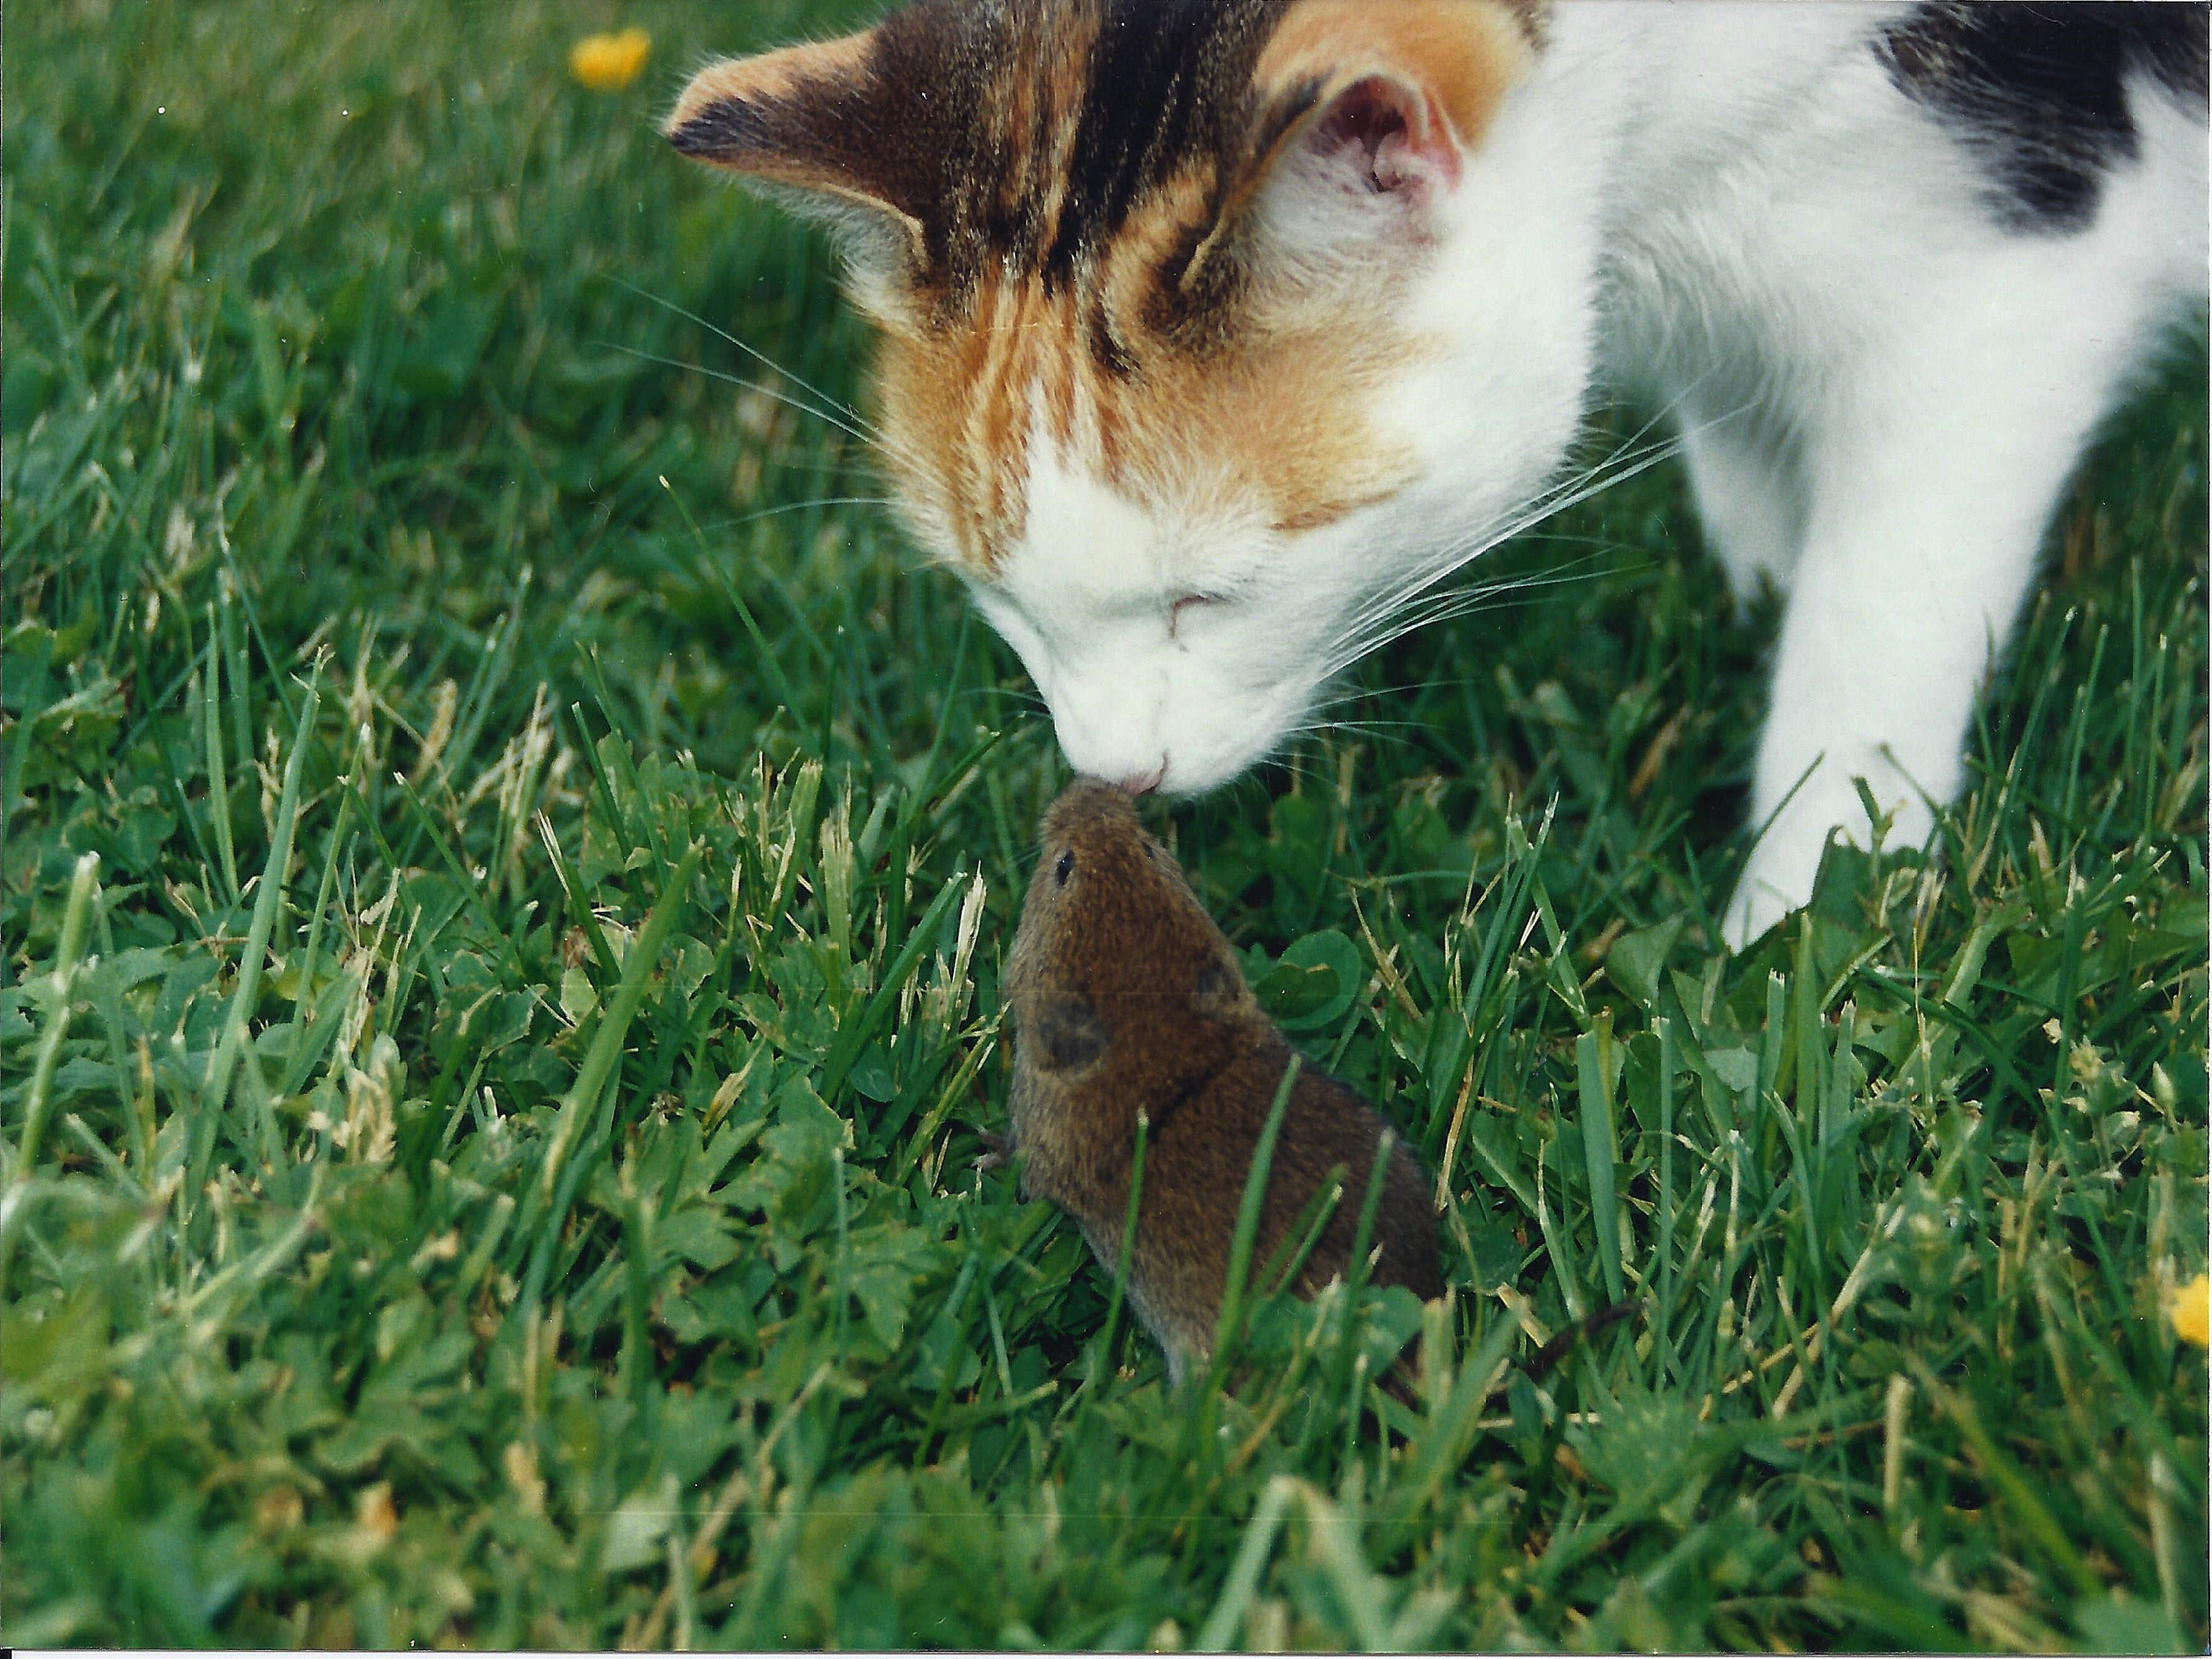 Cat kissing mouse on lawn